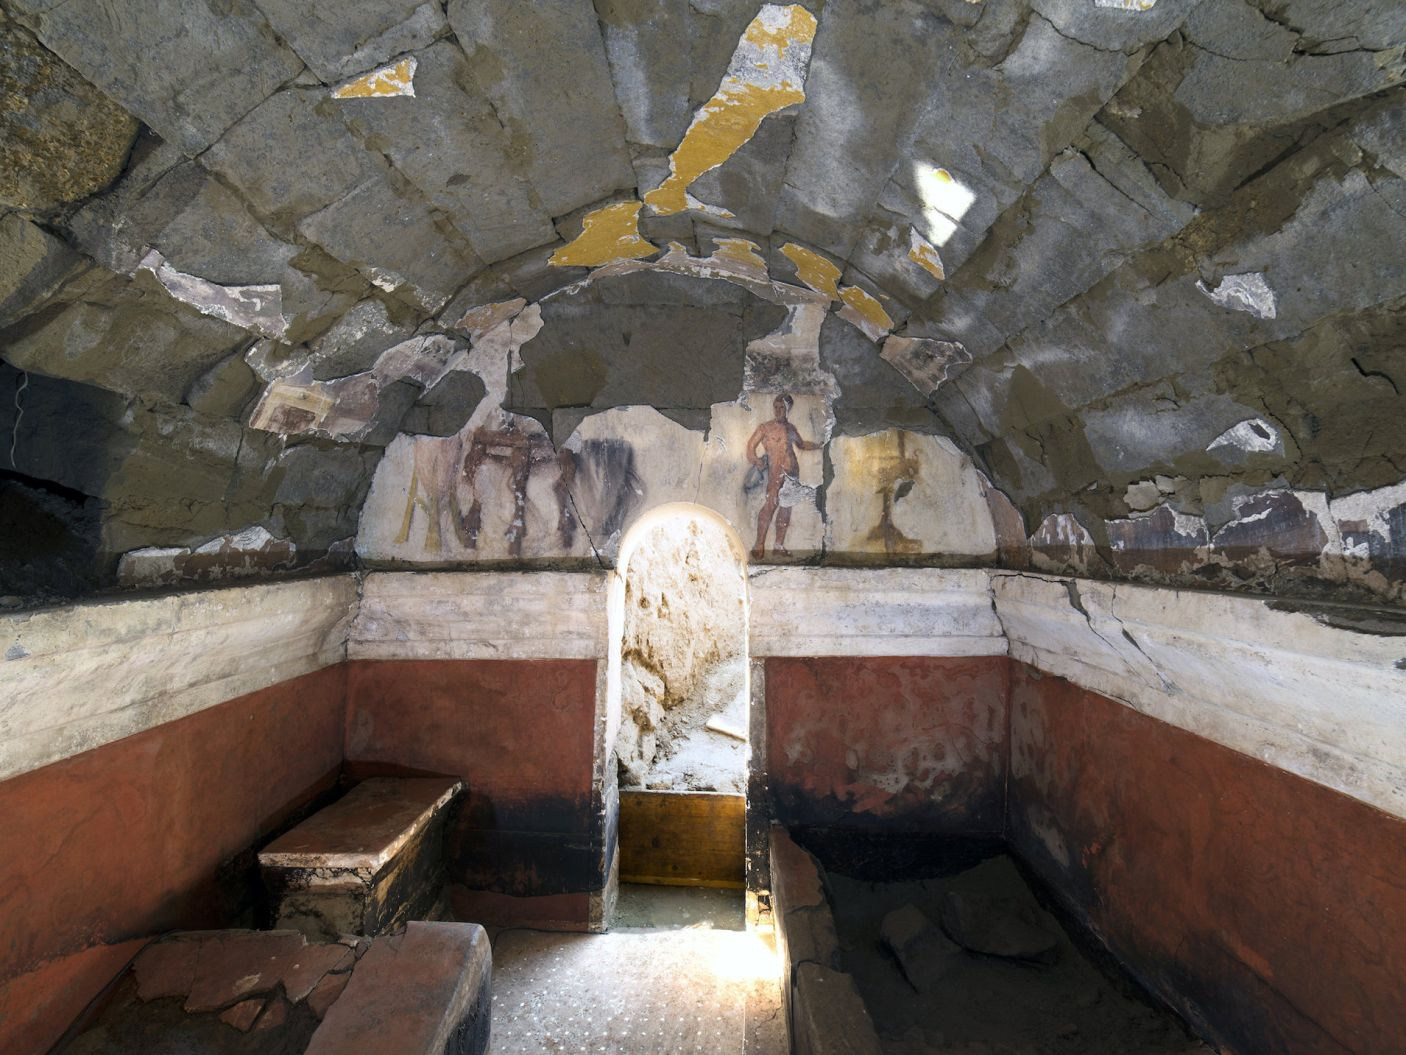 Naked Servant Depicted in Newly Discovered 2,200-Year-Old Tomb Mural in Italy